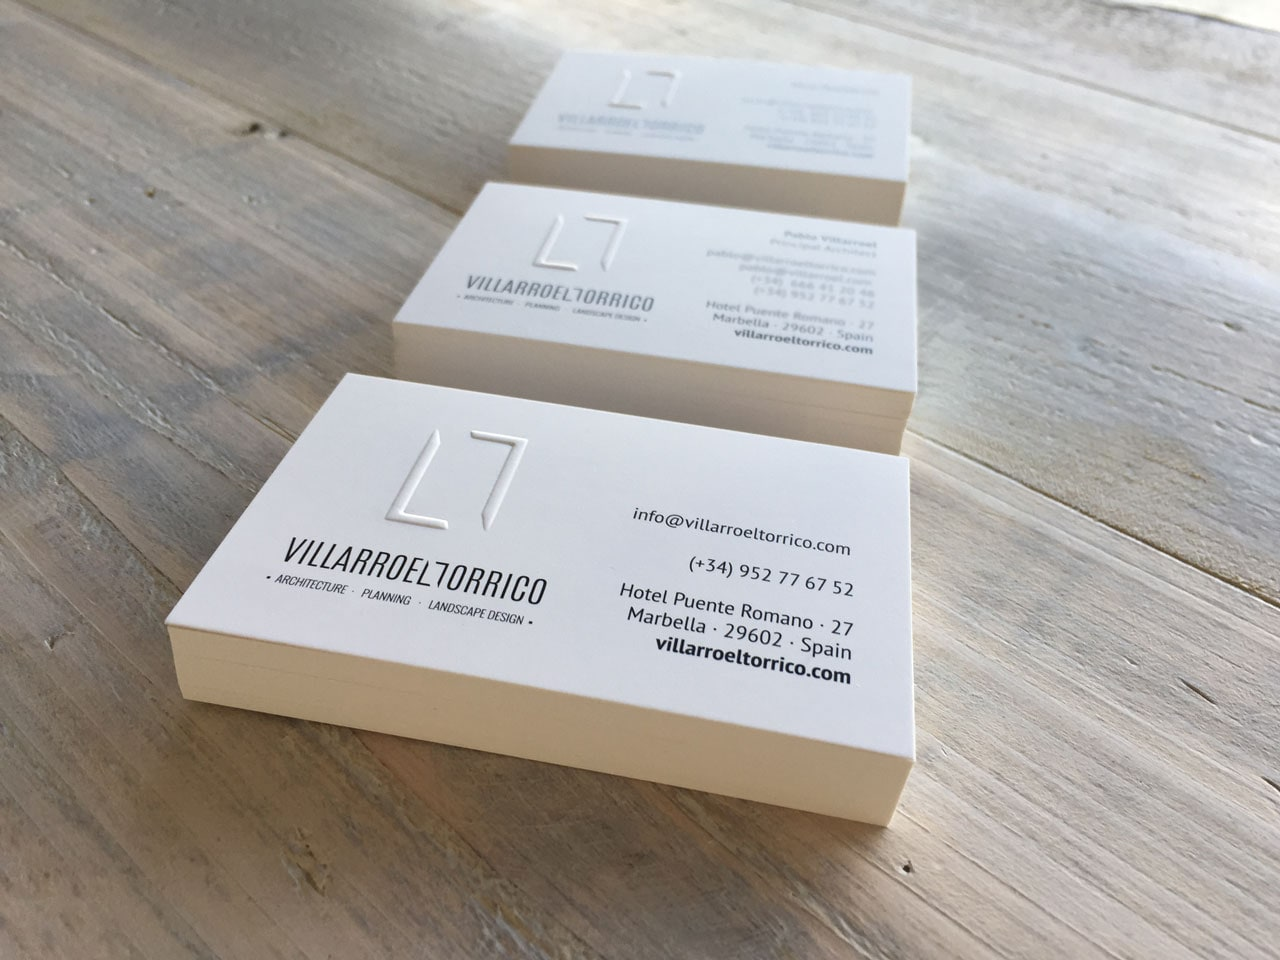 Business card design for Villarroeltorrico Arquitecture